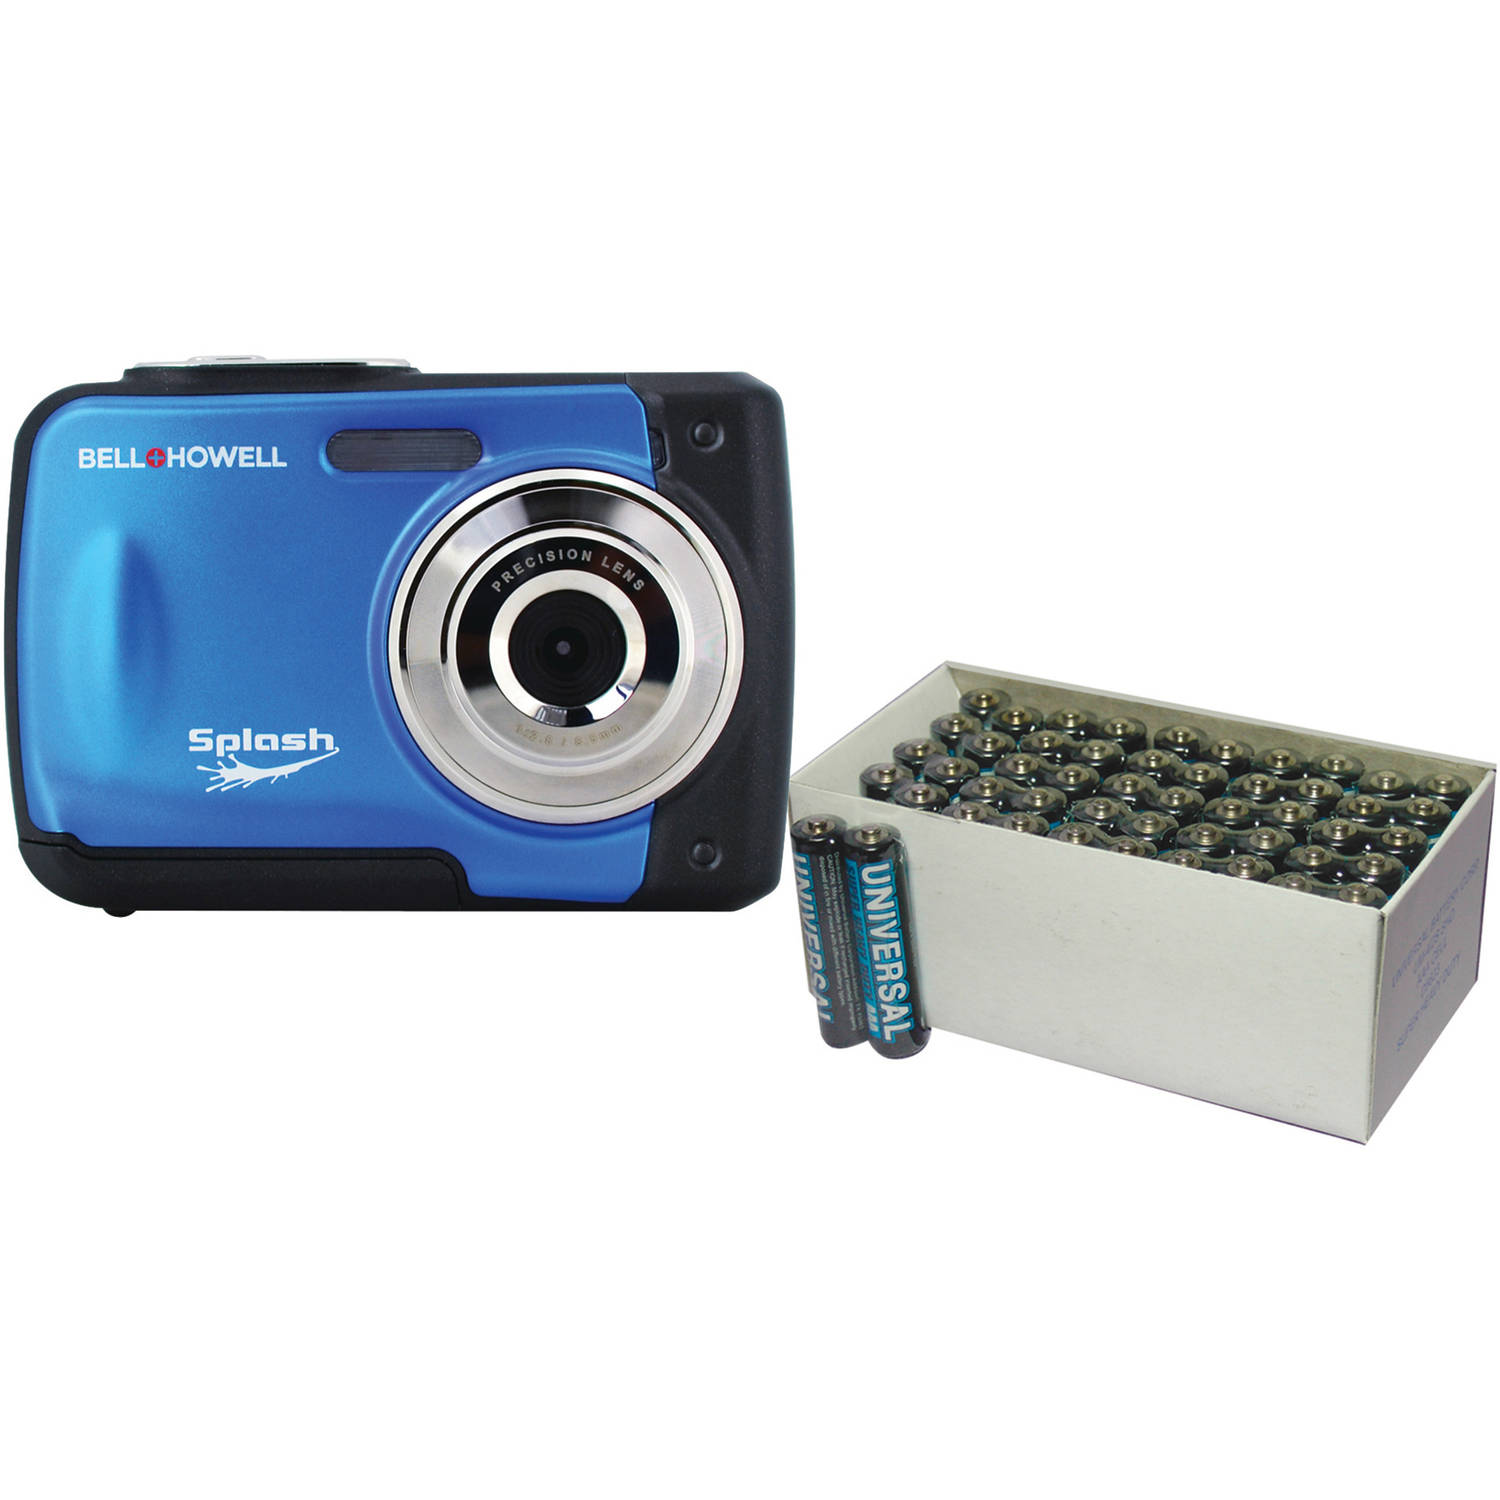 Bell+Howell Blue WP10 Waterproof Digital Camera with 12 Megapixels and UPG 50-Pack AAA Batteries